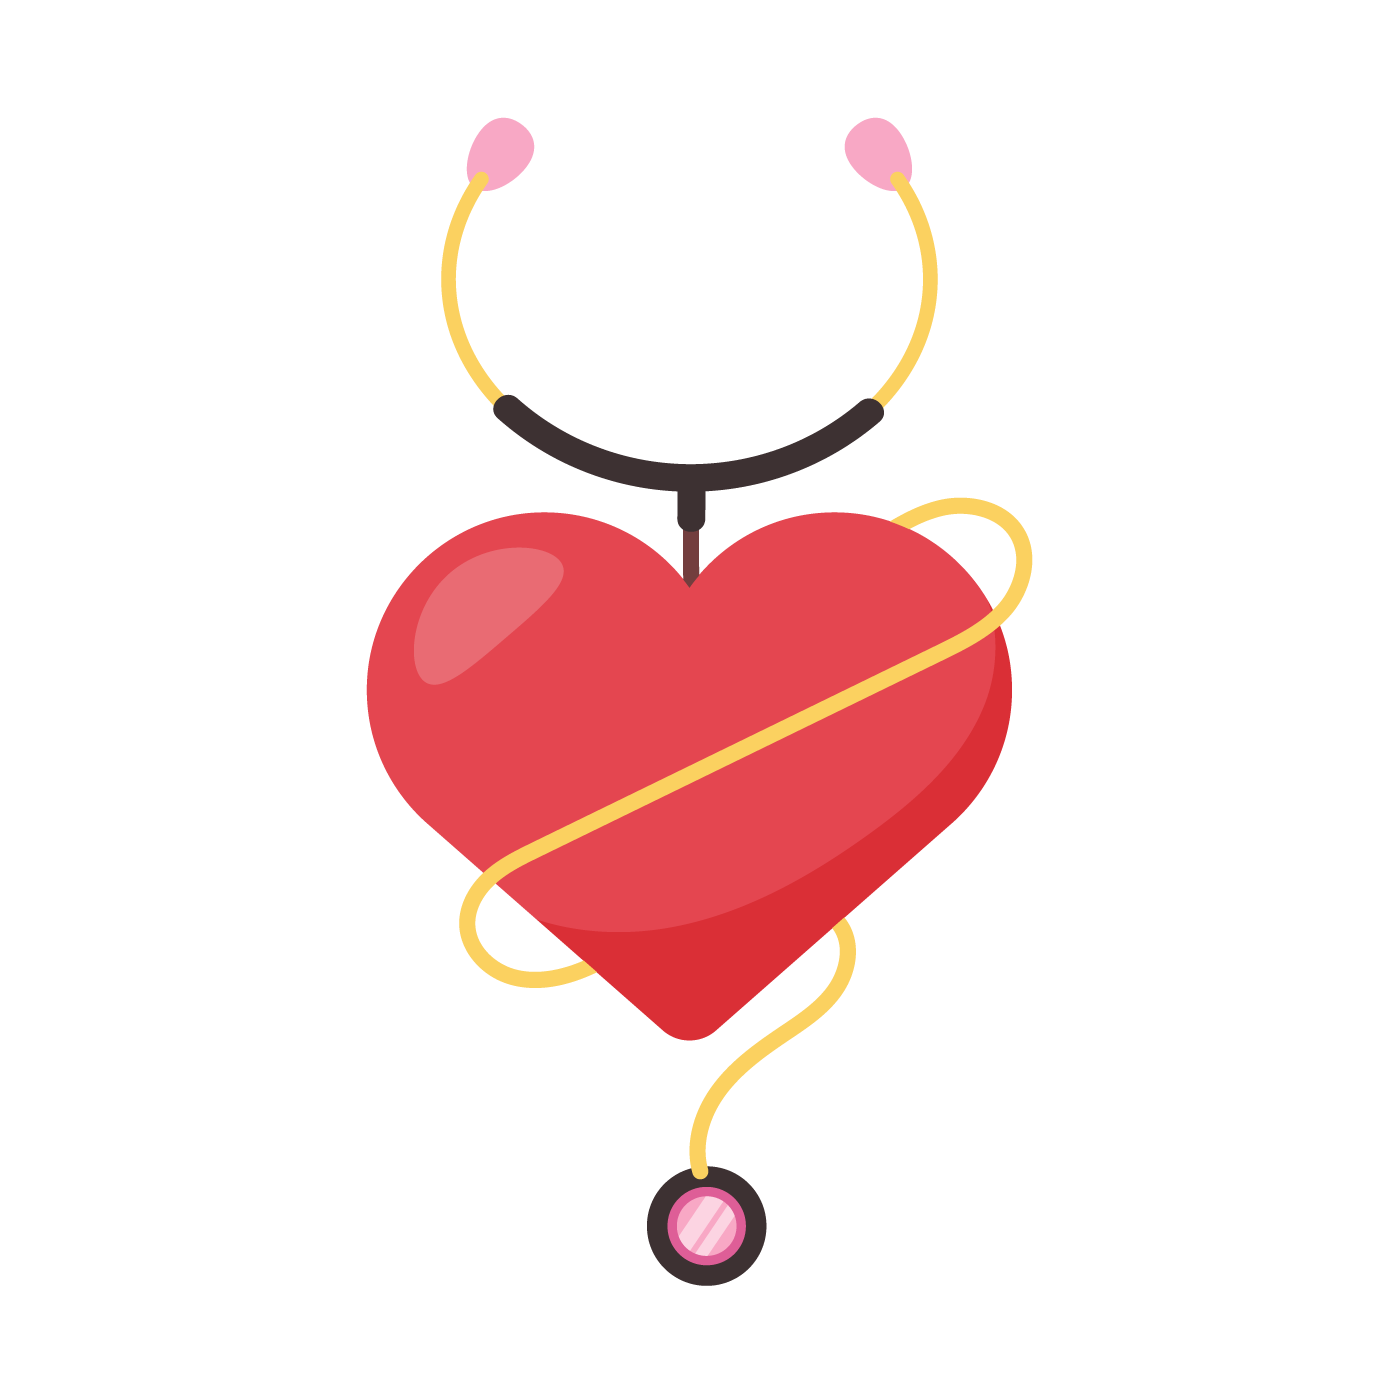 A heart stethoscope to indicate trust